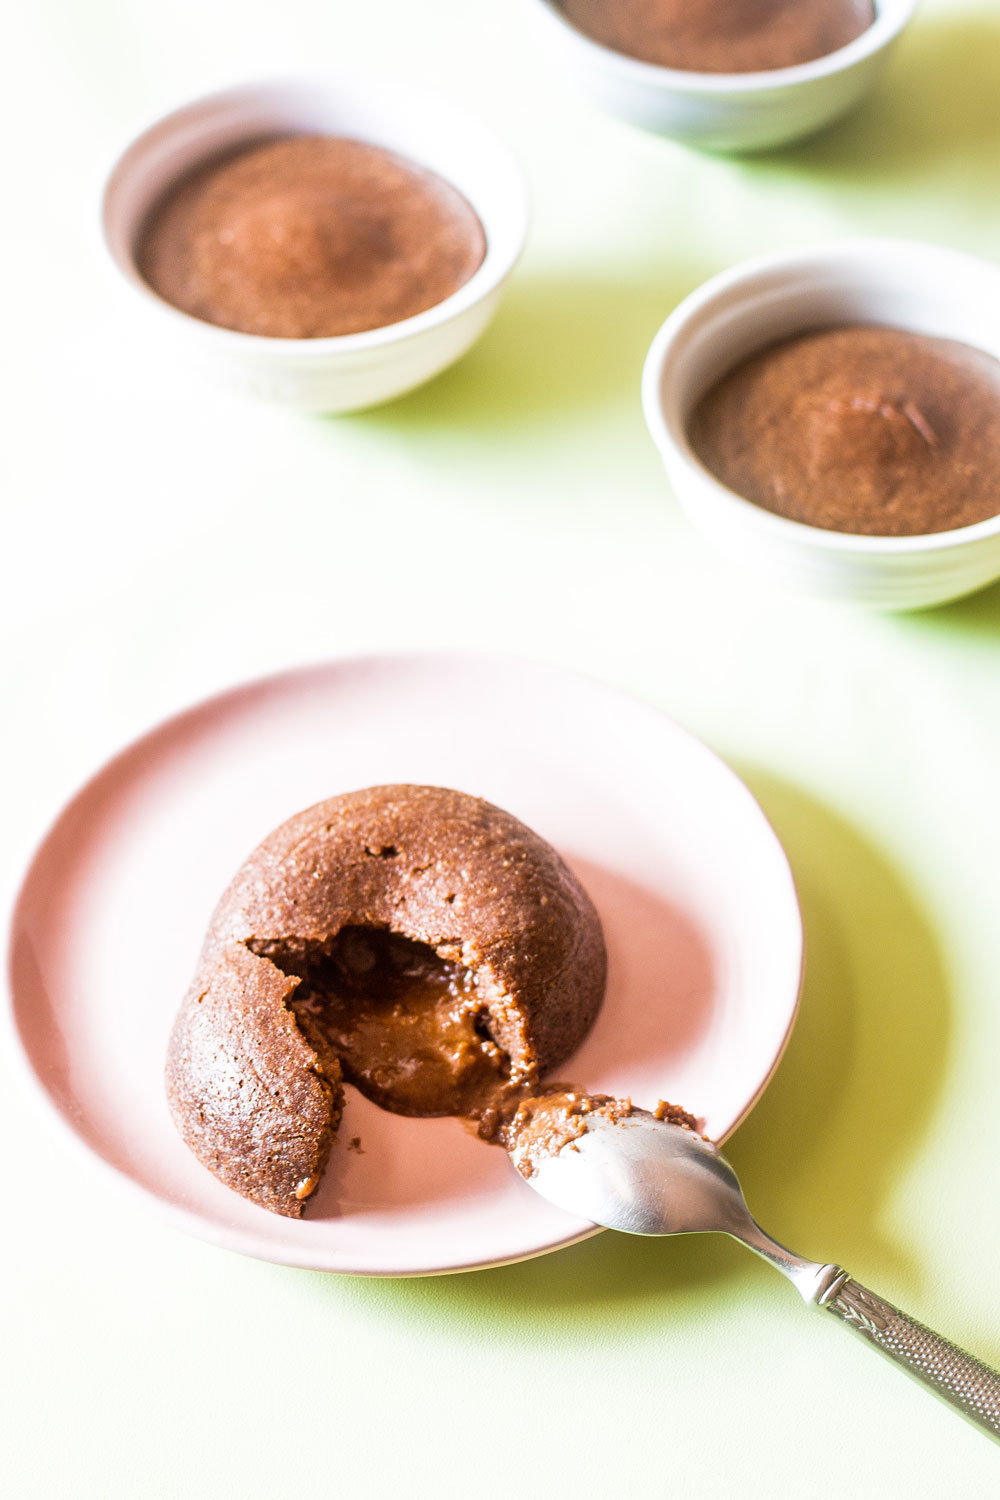 These refined sugar-free & gluten-free chocolate lava cakes are quick, easy, fuss-free, and made with everyday healthy ingredients! https://www.spotebi.com/recipes/sugar-free-gluten-free-chocolate-lava-cakes/